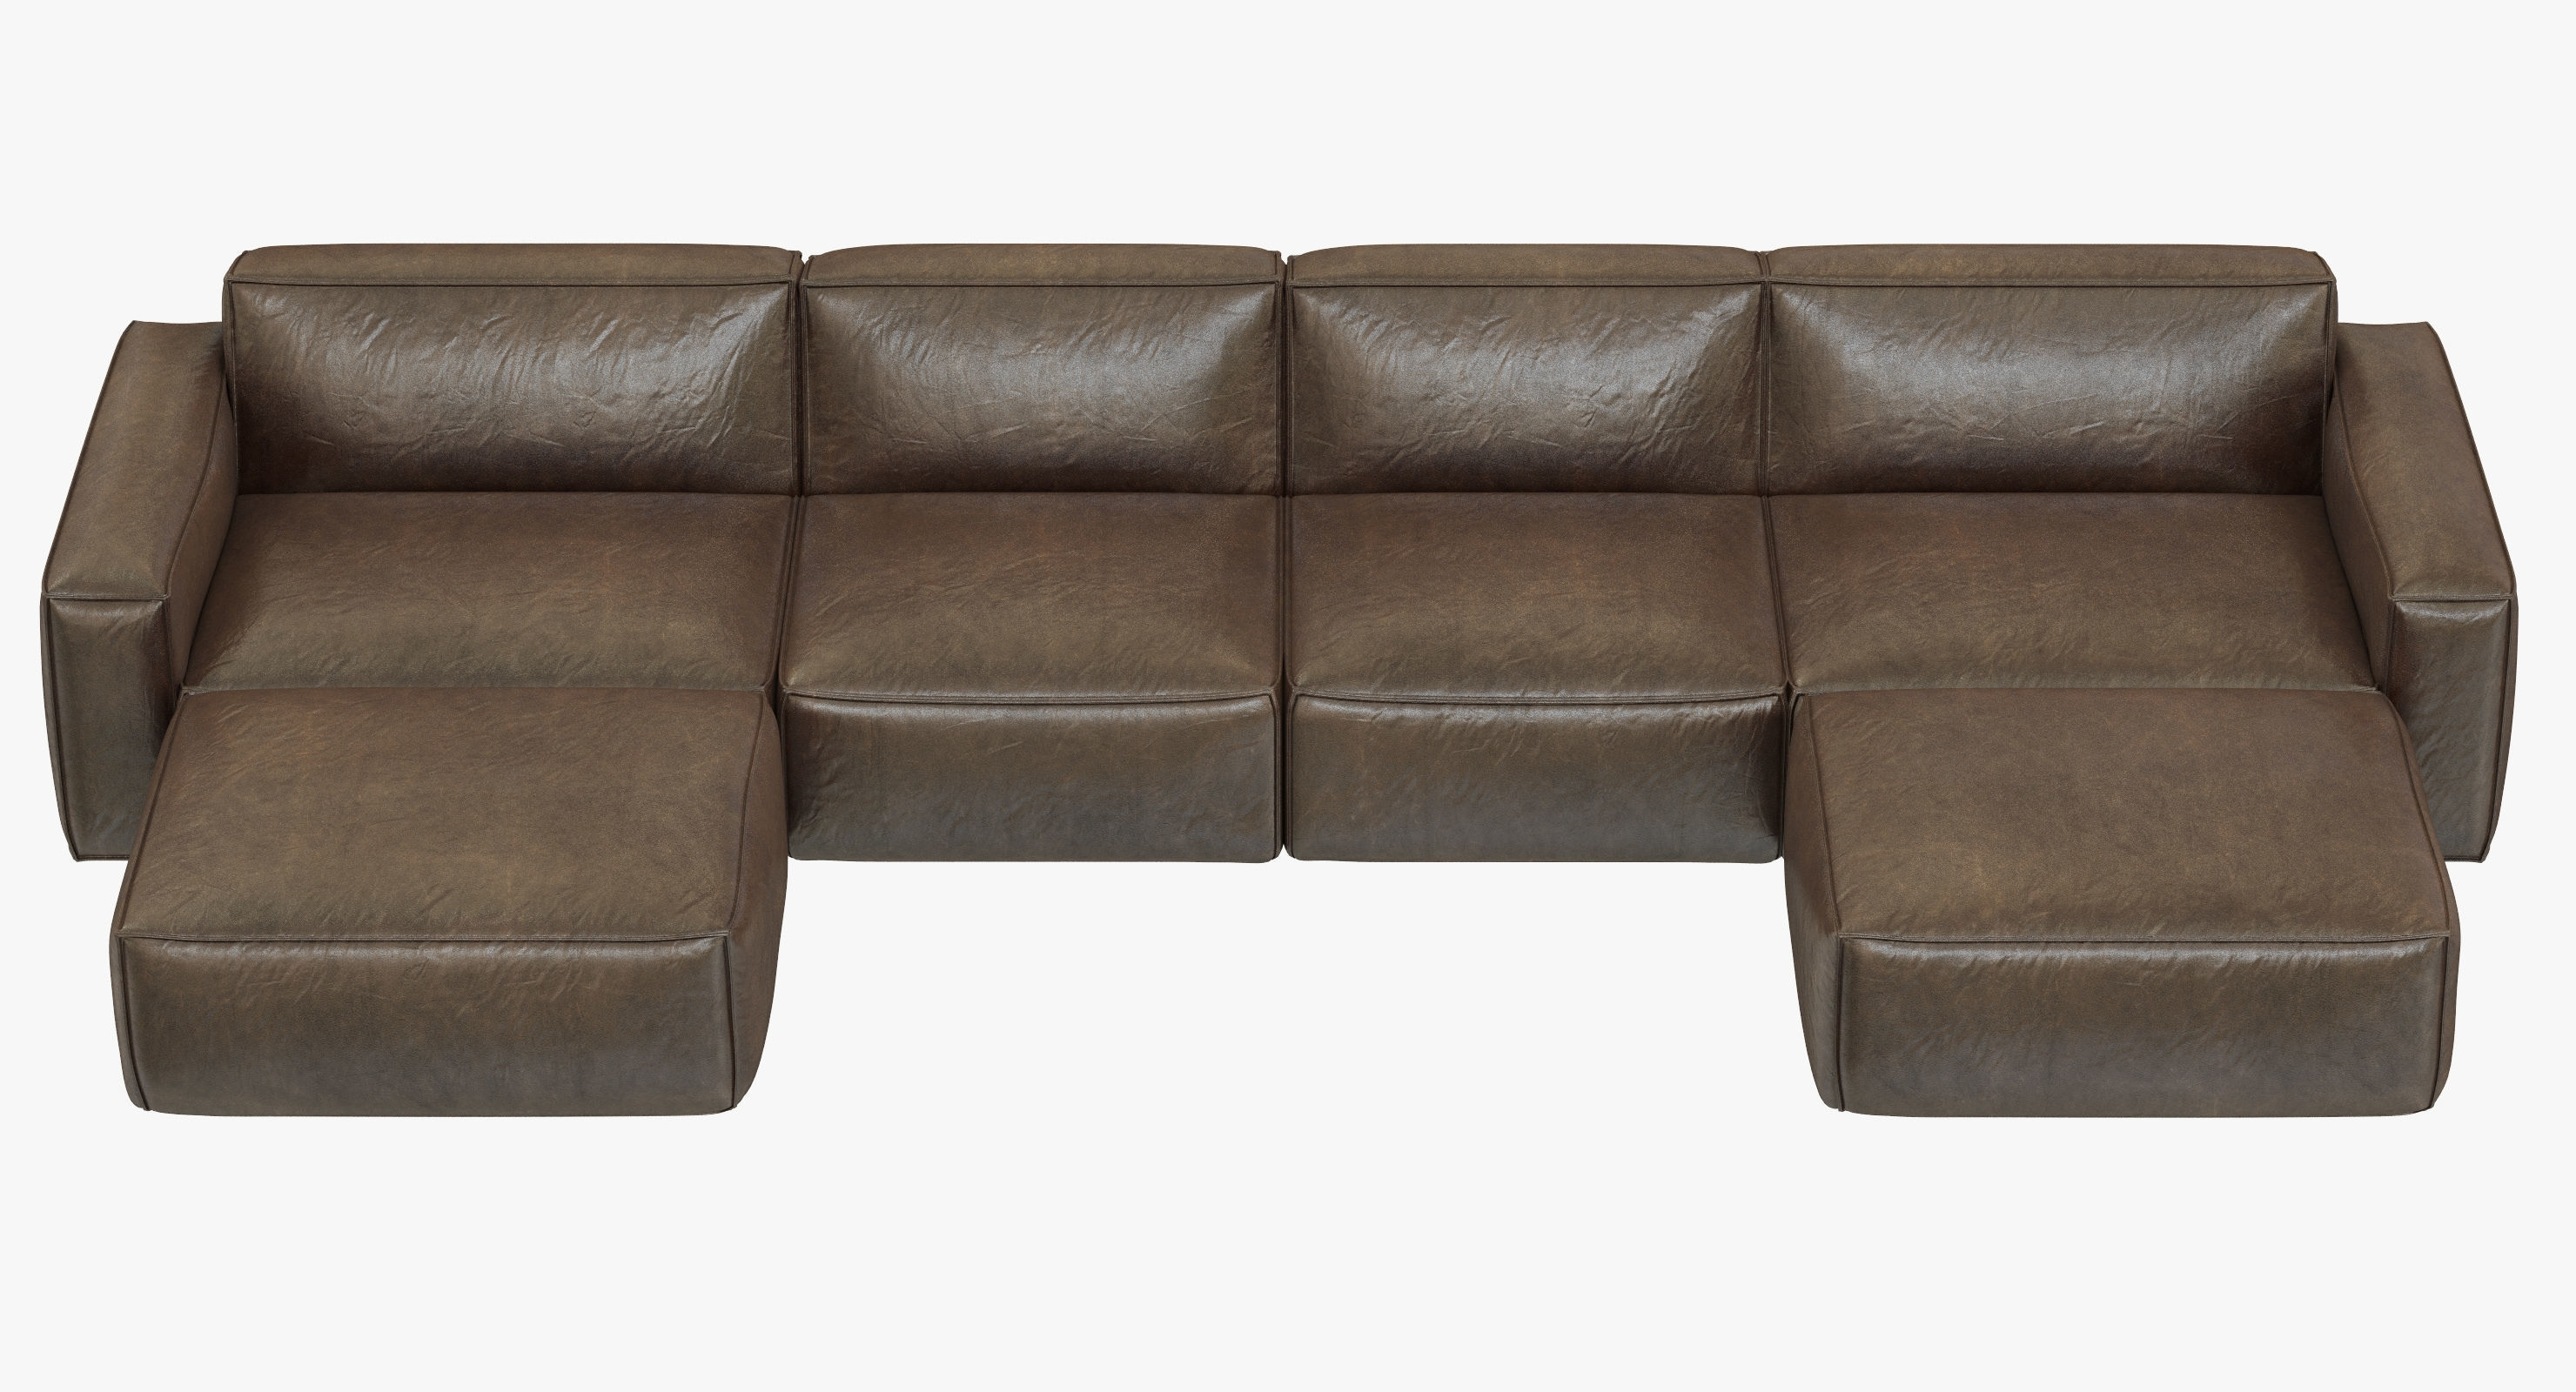 Trendy Rh Modern Como Modular Customizable Sectional Sofa 3D Model Max Throughout Customizable Sectional Sofas (View 13 of 15)